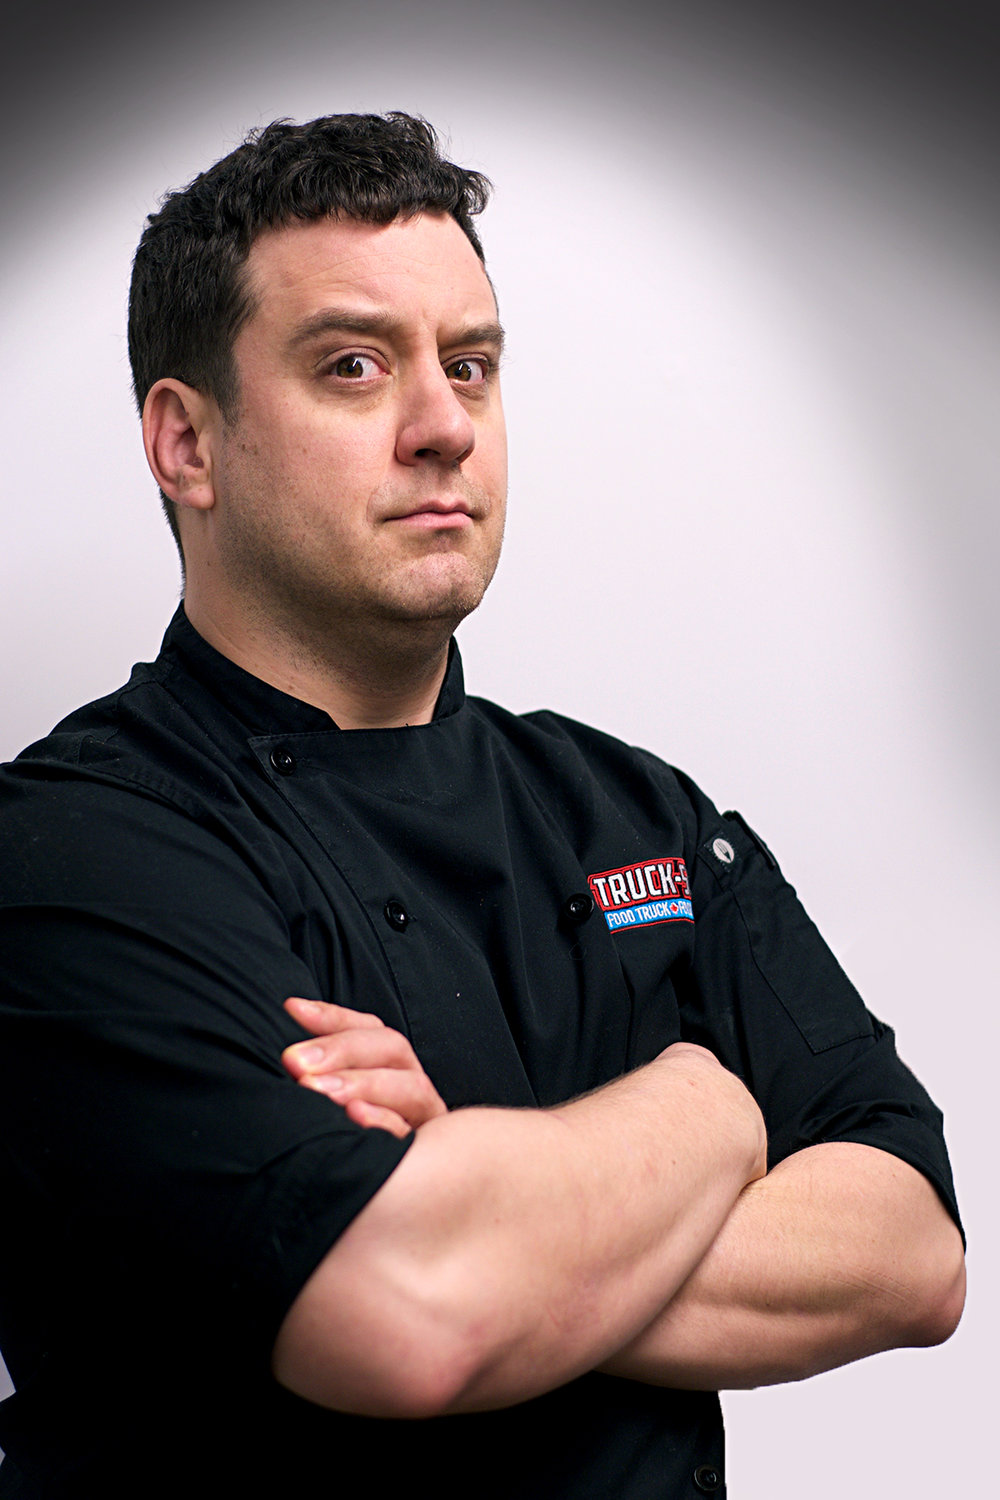 Corporate Chef Kyle Christofferson